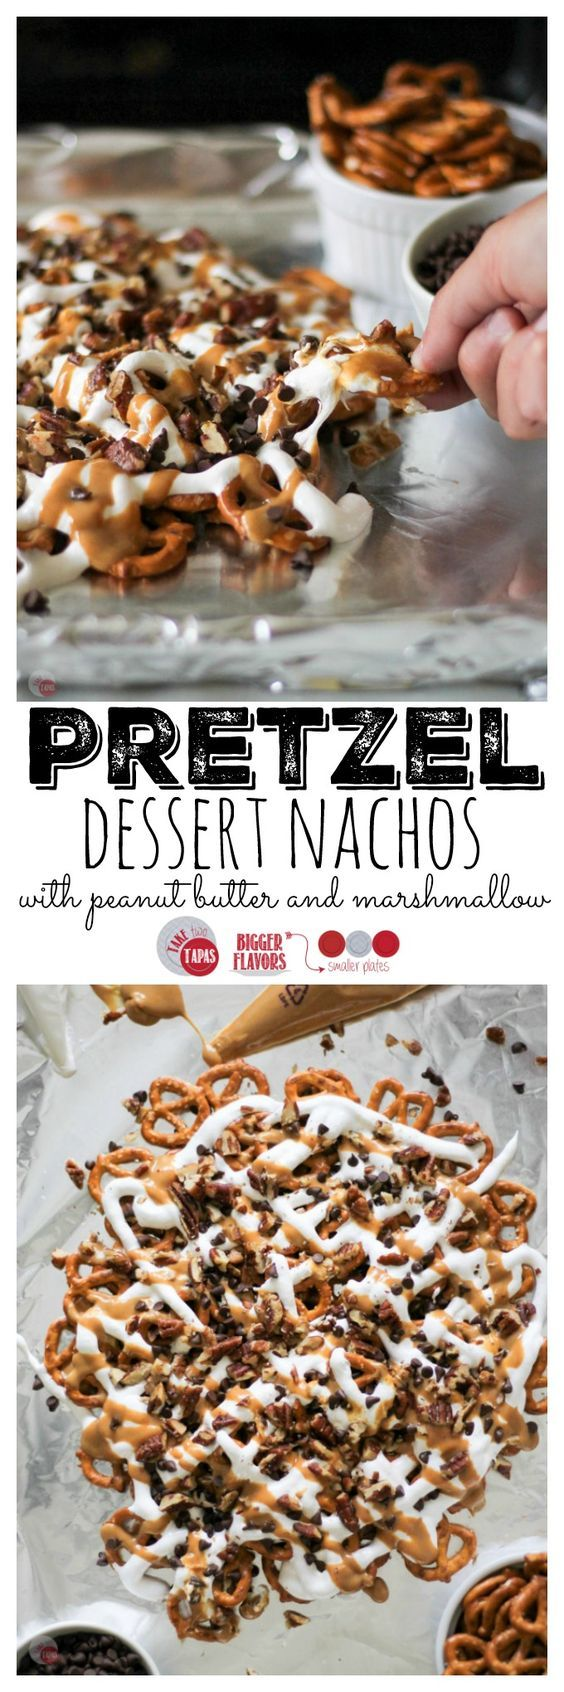 Pretzel Dessert Nachos are a new twist on a savory favorite. Salty pretzels used as chips and topped with peanut butter marshmallow cream chocolate chips and buttery toasted pecans. Pretzel Dessert Nachos Recipe